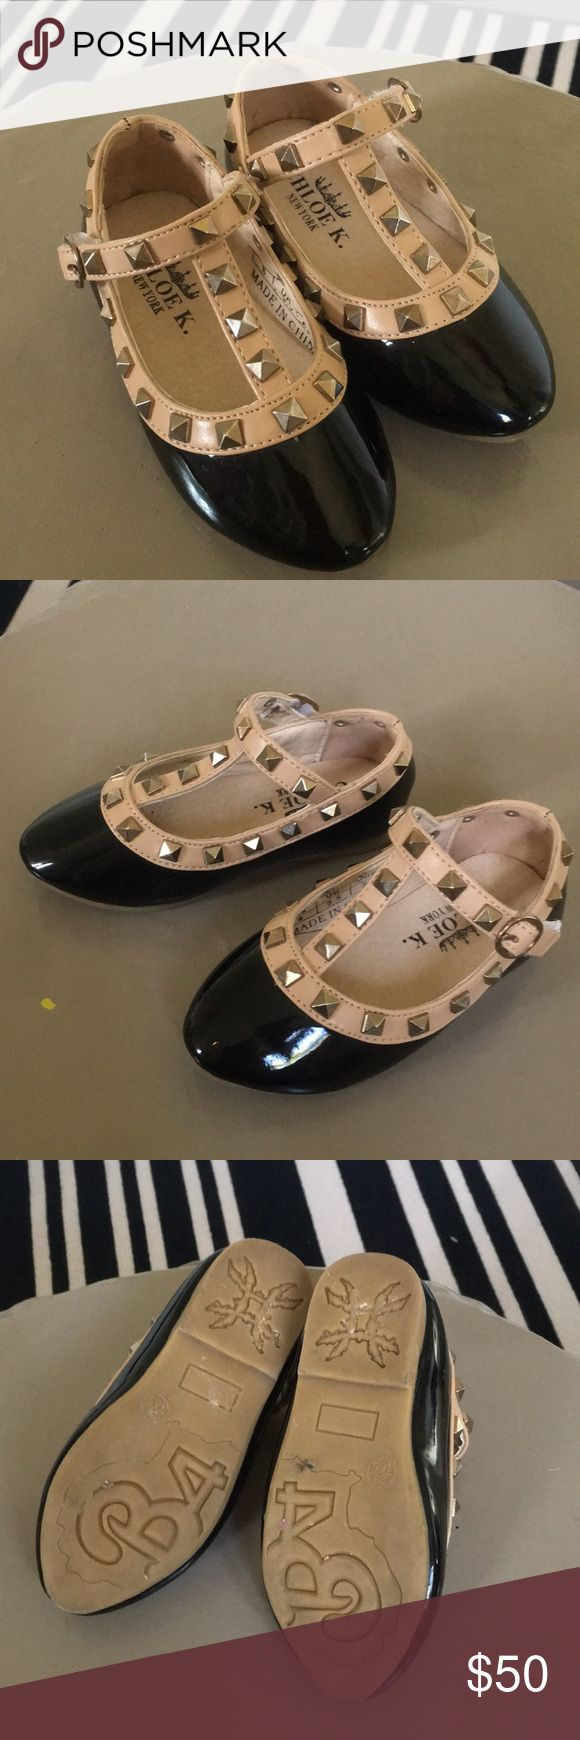 Chloe K. (Valentino look-alike) girls shoes! These are little girl/toddler size 5.5 black patent shoes! They look just like the Valentino rockstud flats and are precious for your little girl! In perfect condition! Chloe K Shoes Dress Shoes